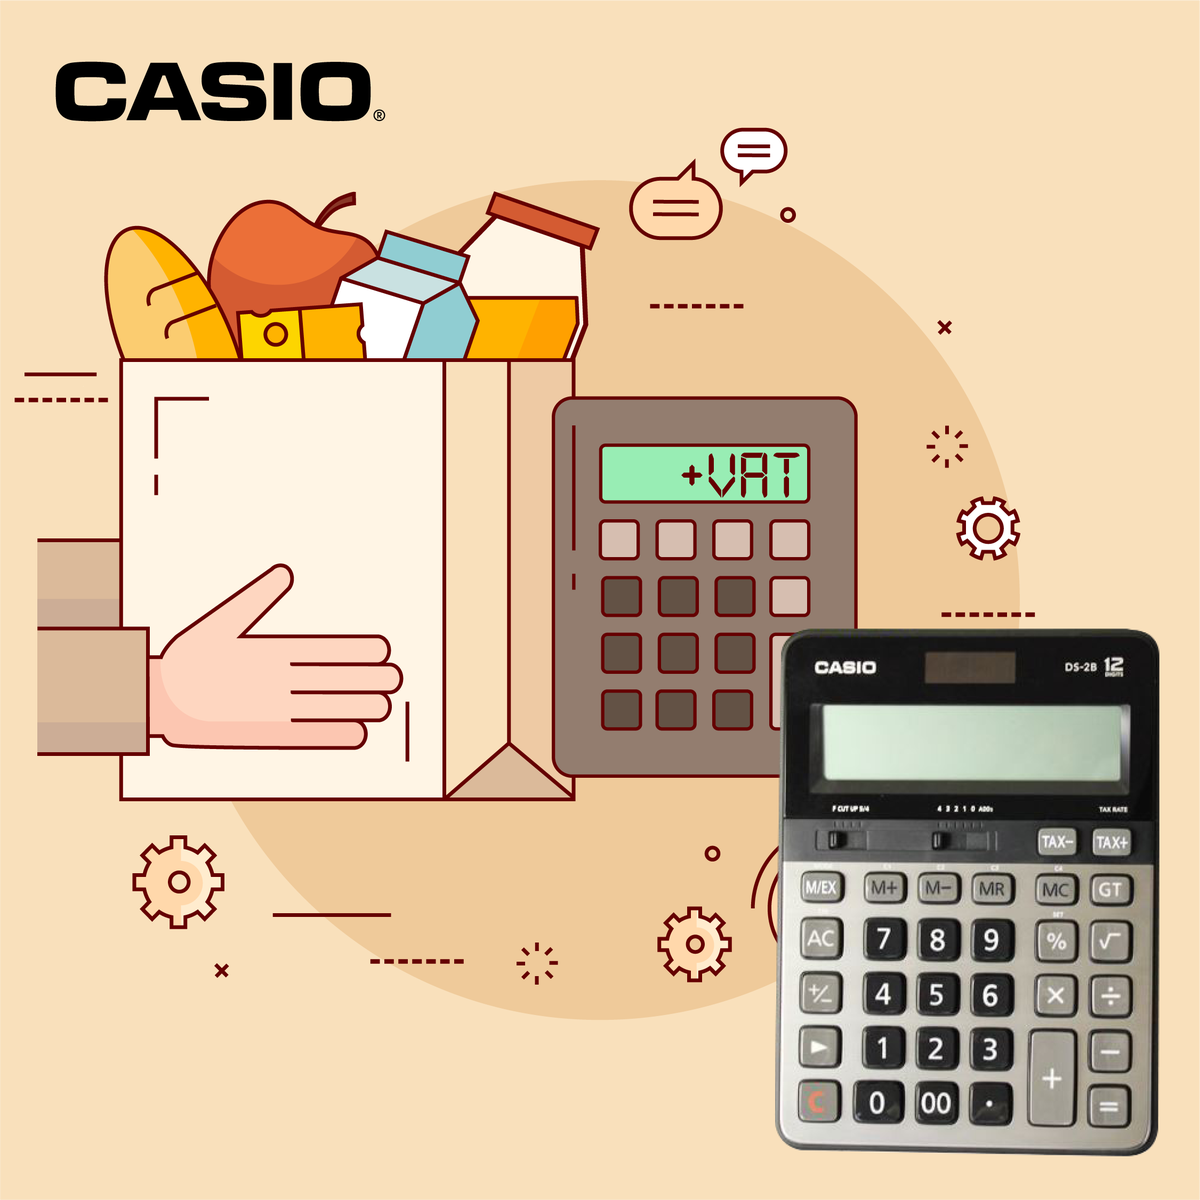 casio calculators me on twitter for all your groceries vat our